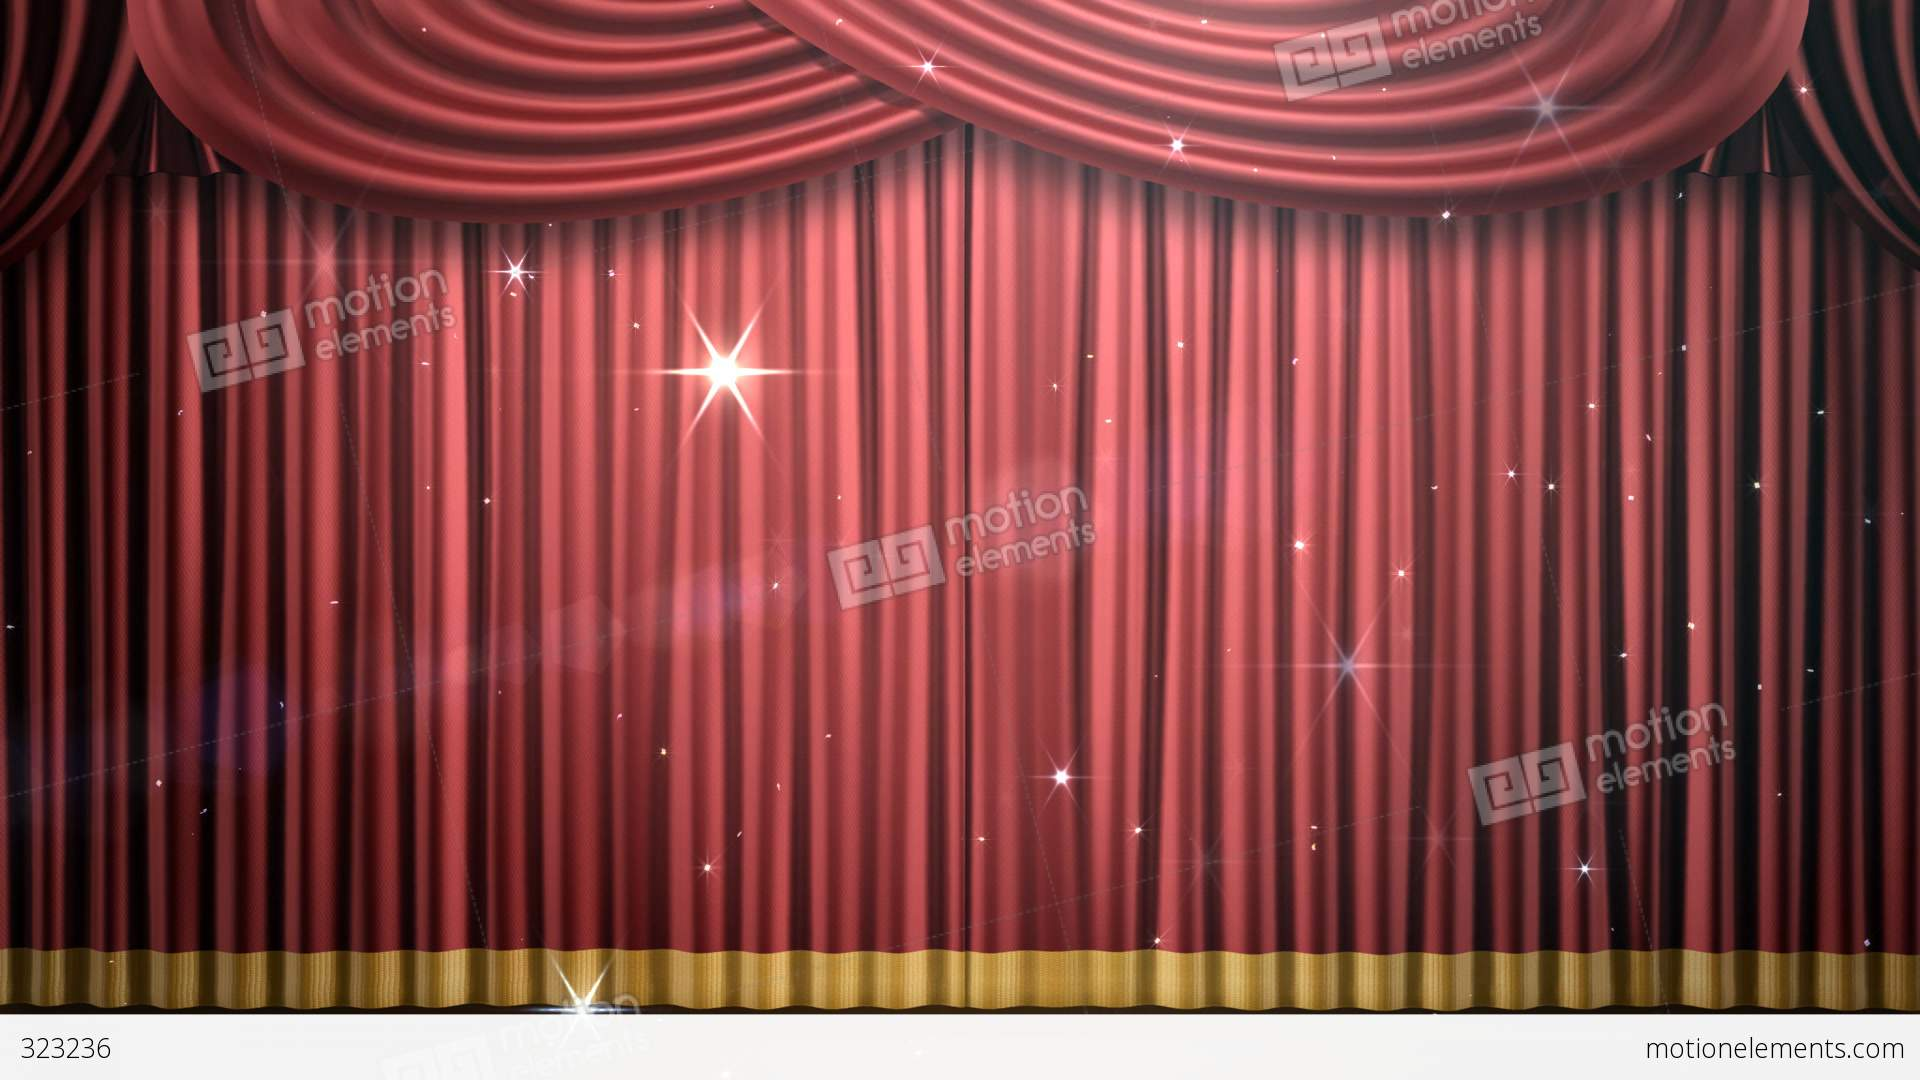 Stage curtains animation - Stage Curtain 2 Fri2 Hd Stock Animation Royalty Free Stock Animation Library 323236